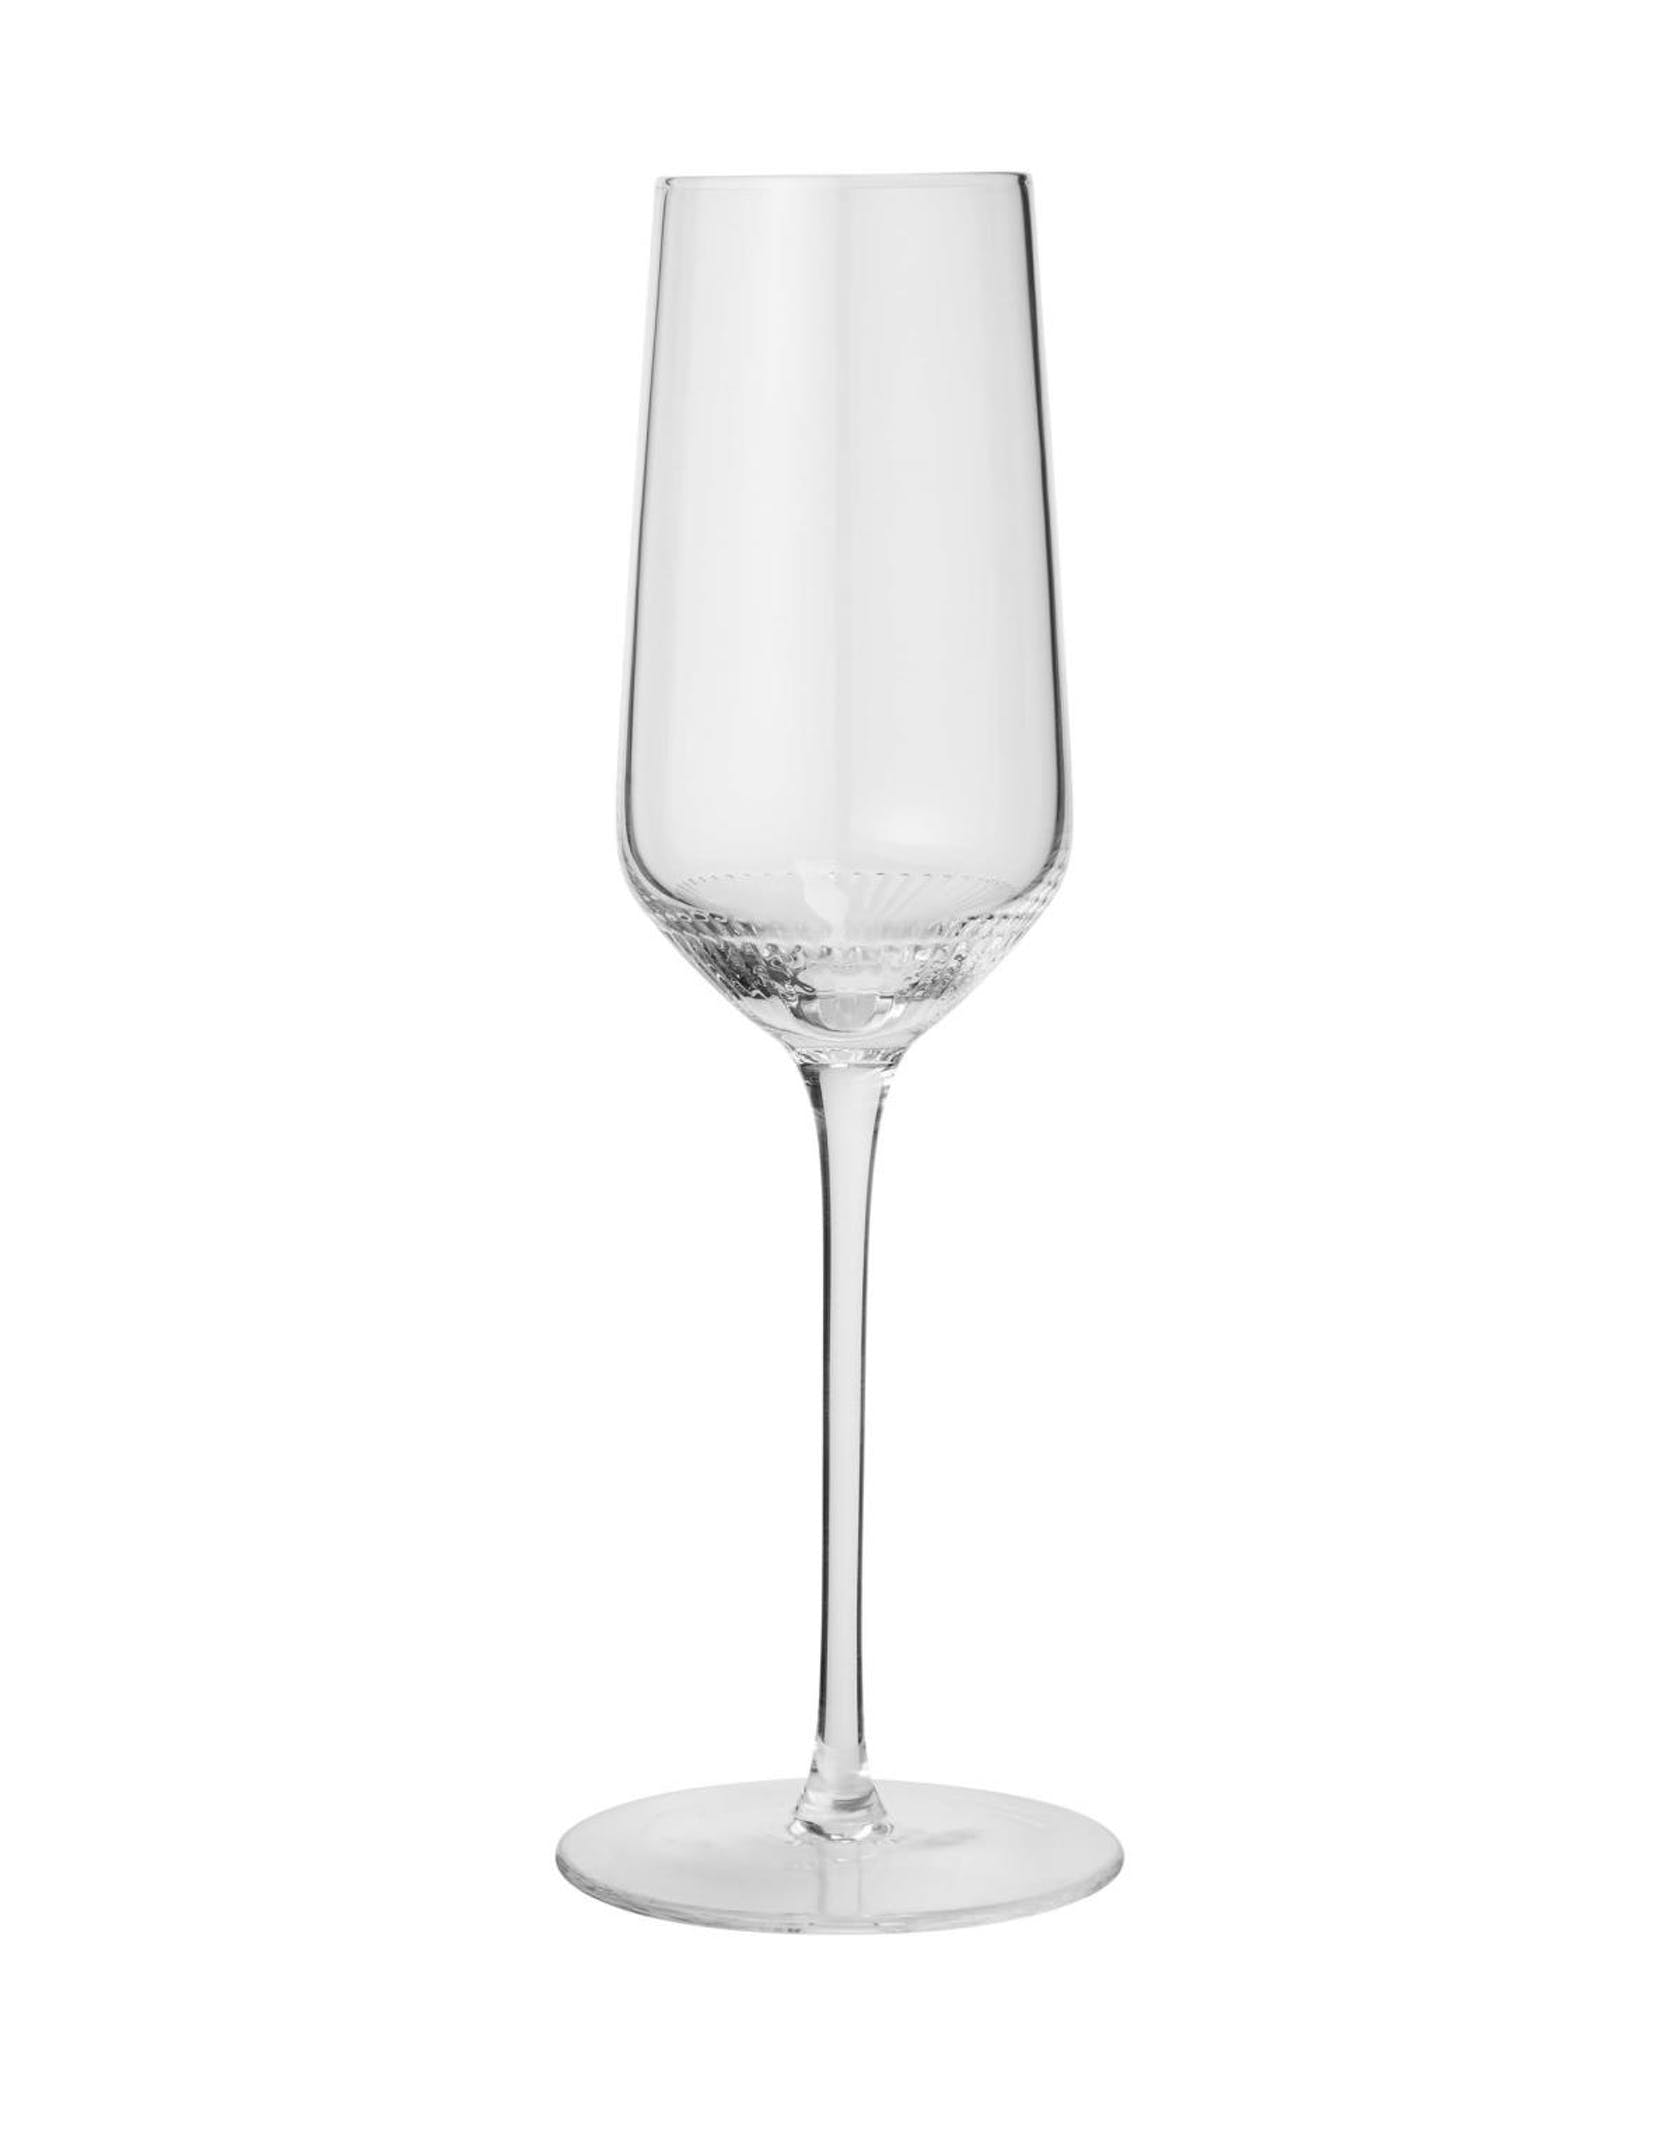 Marc O'Polo Moments Transparent Champagnerglas 22 cl